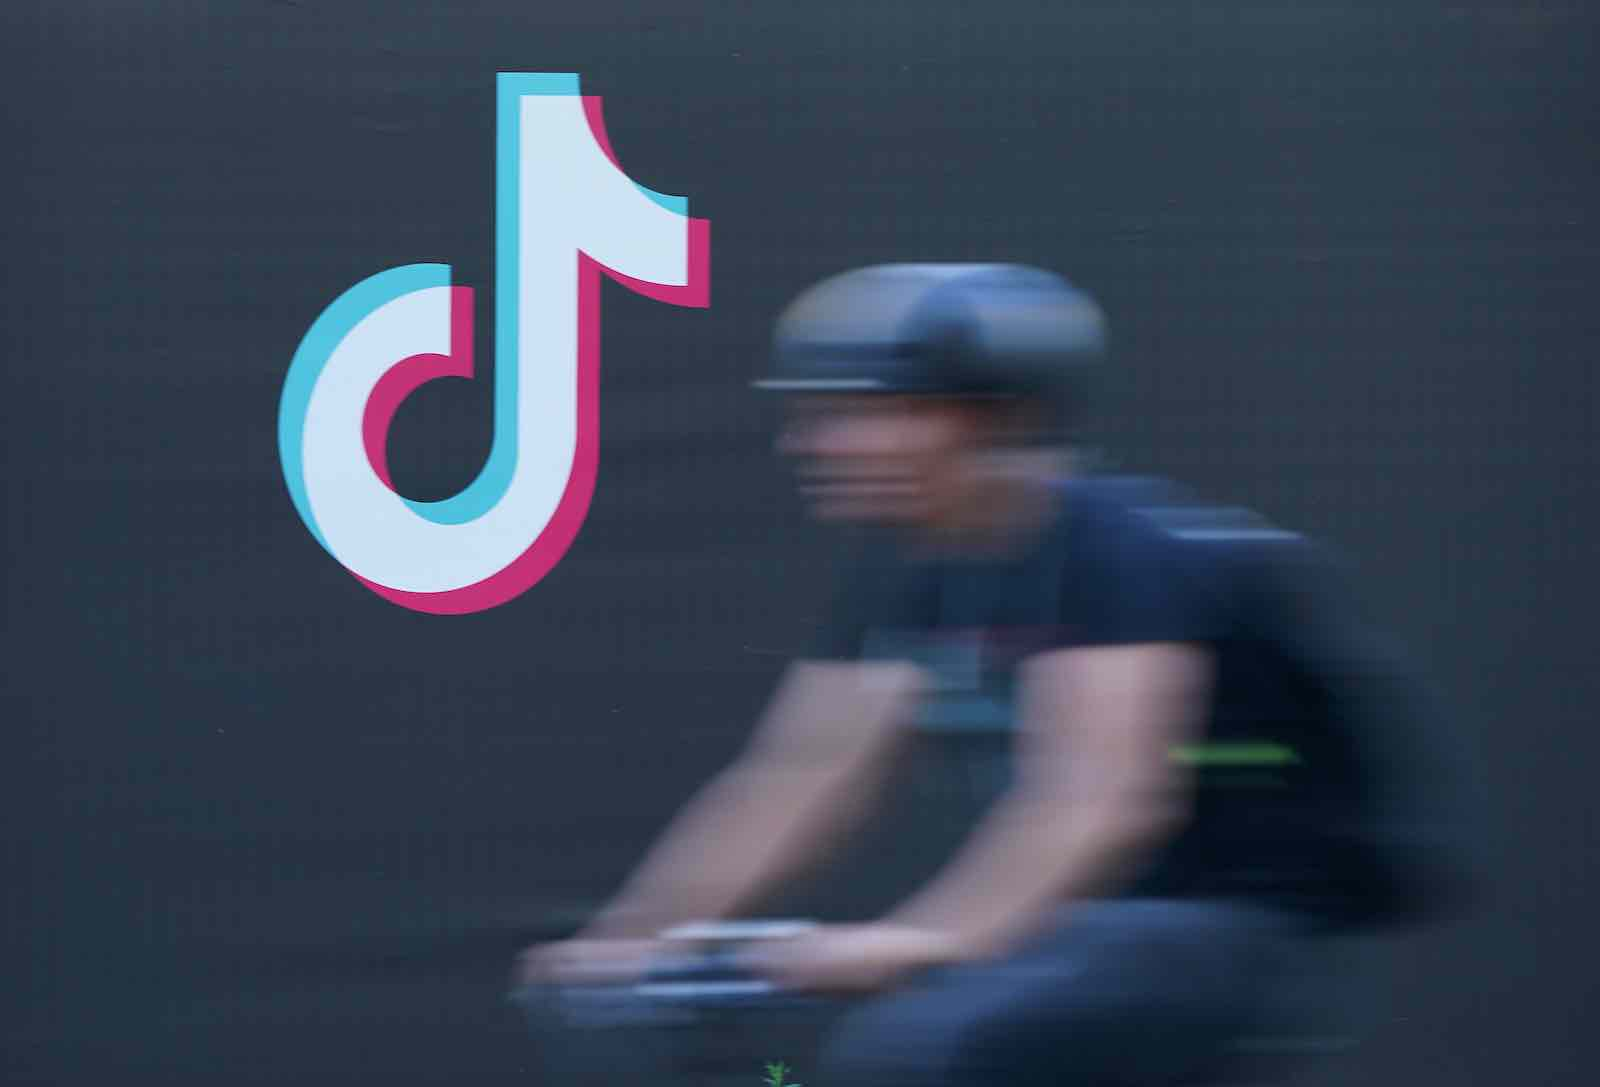 TikTok's speedy rise into the West's cultural mainstream reflects the power of its specialised recommendation system (Sean Gallup/Getty Images)